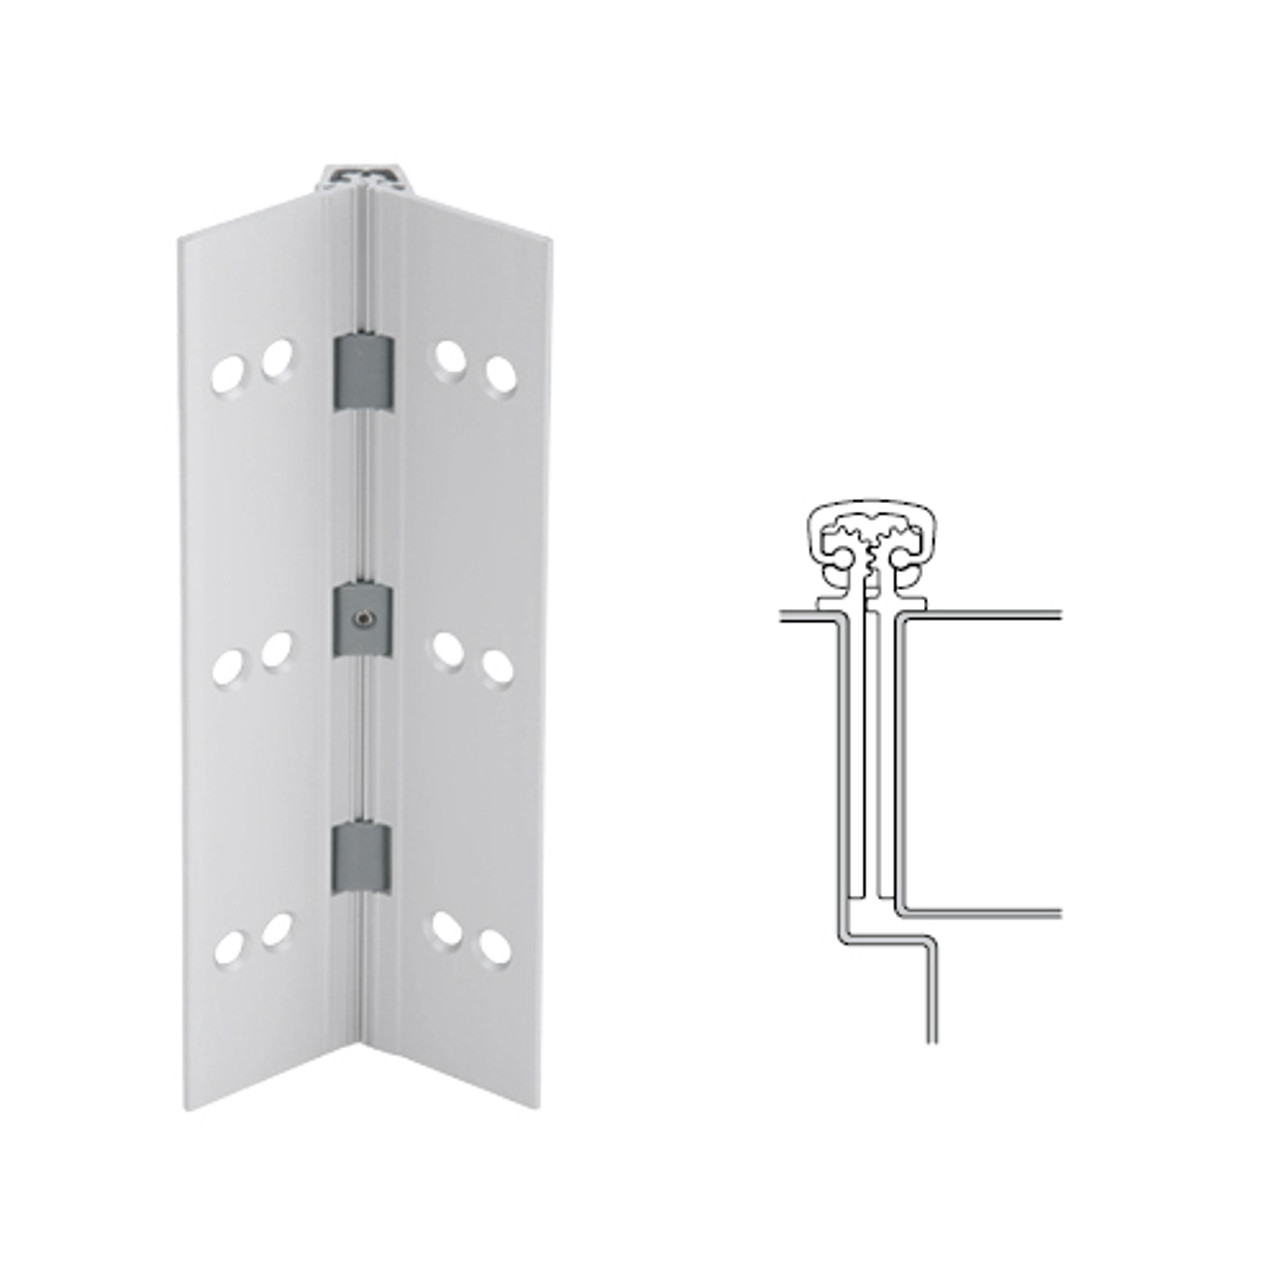 027XY-US28-120-HT IVES Full Mortise Continuous Geared Hinges with Hospital Tip in Satin Aluminum